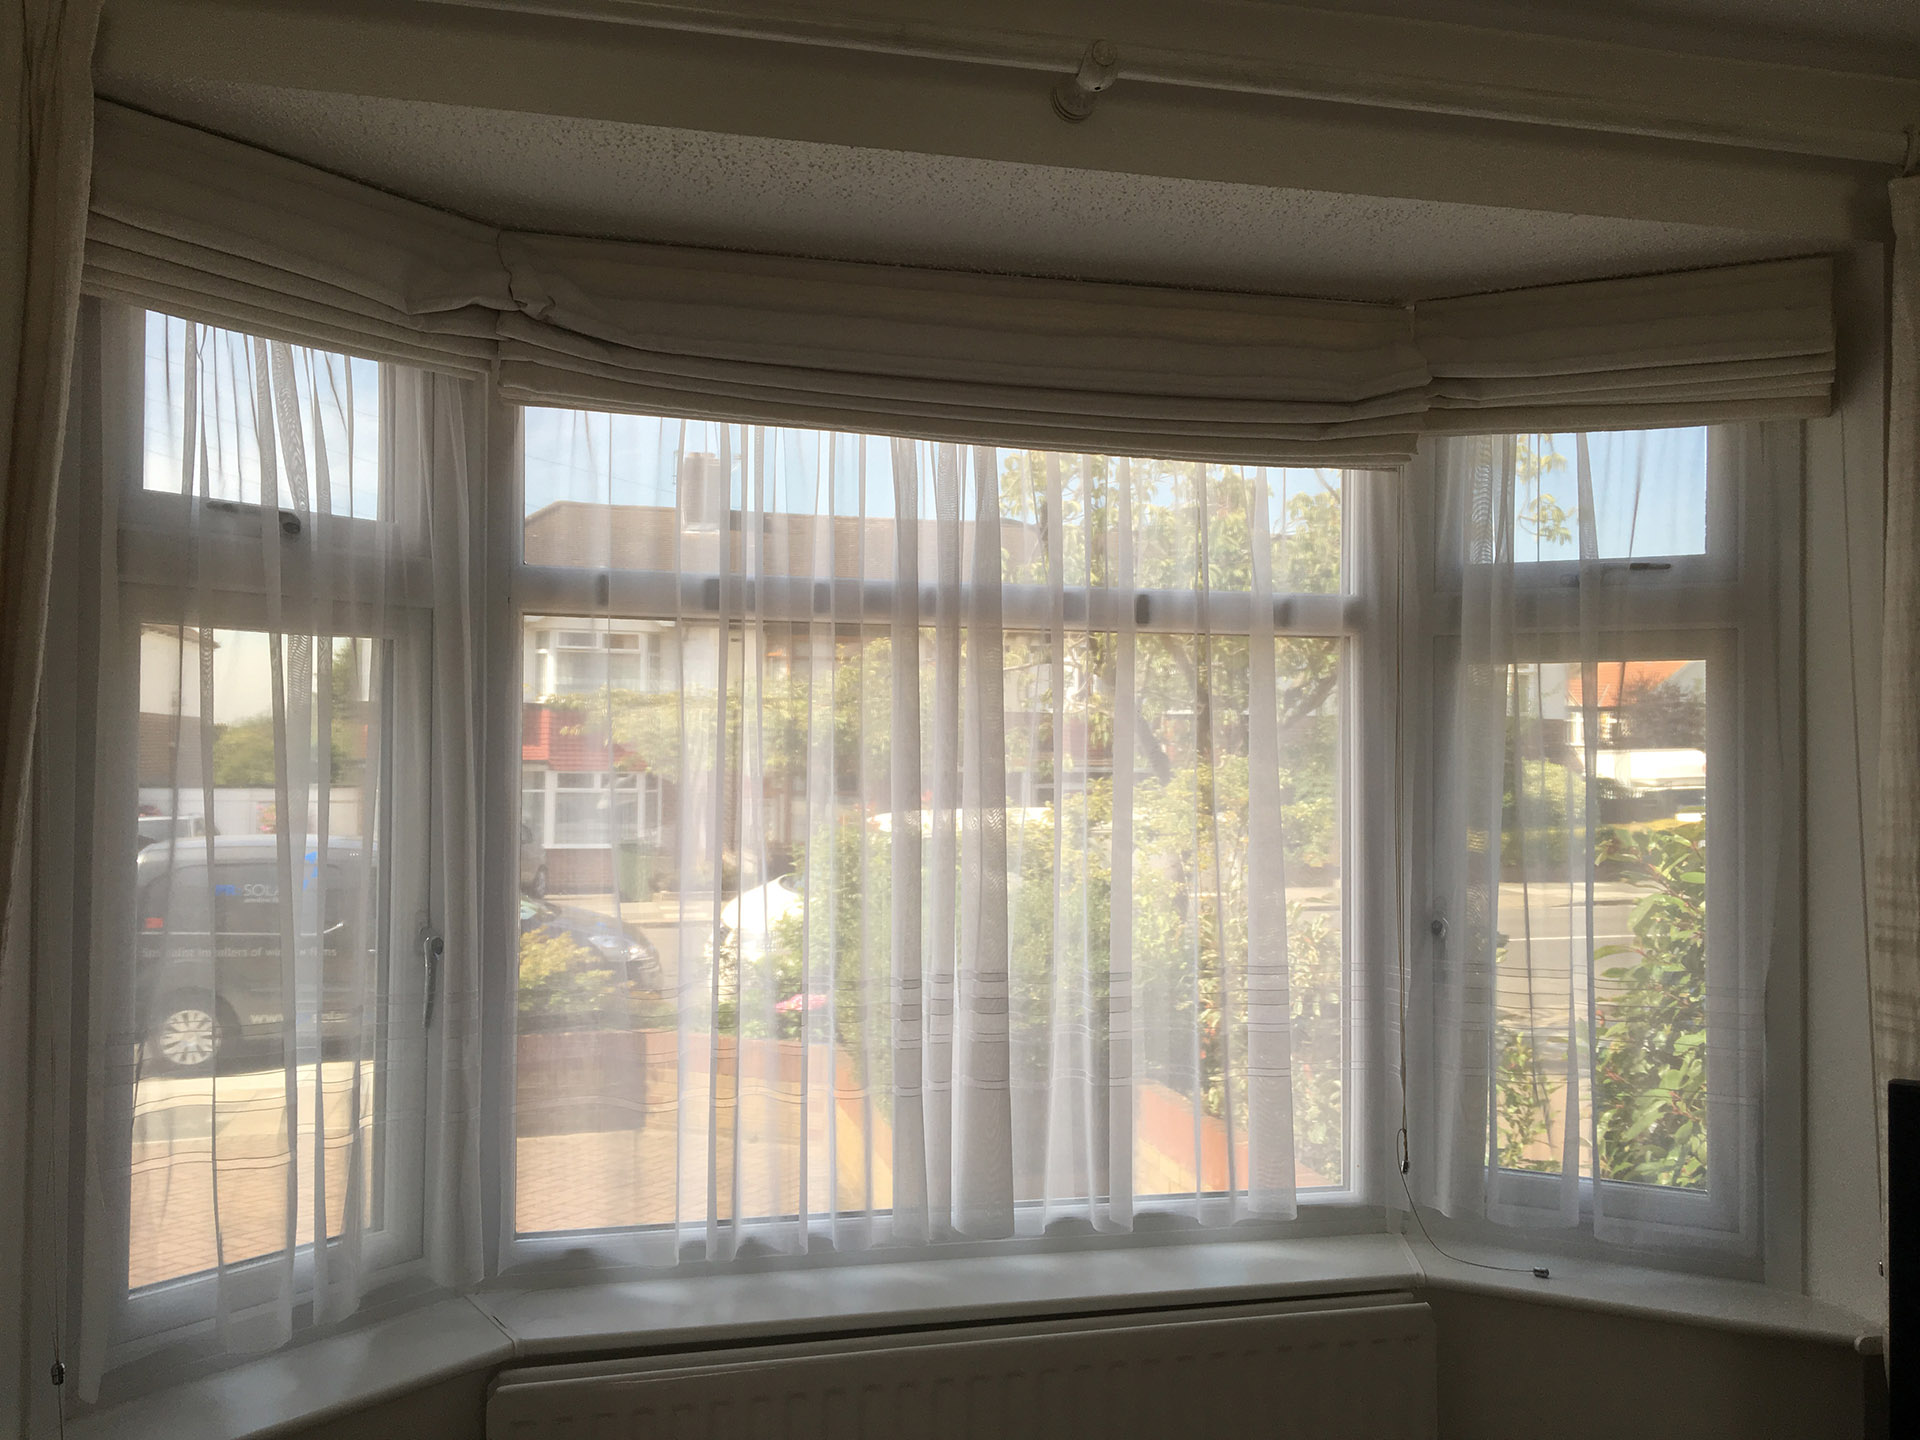 Alternative to net curtains before